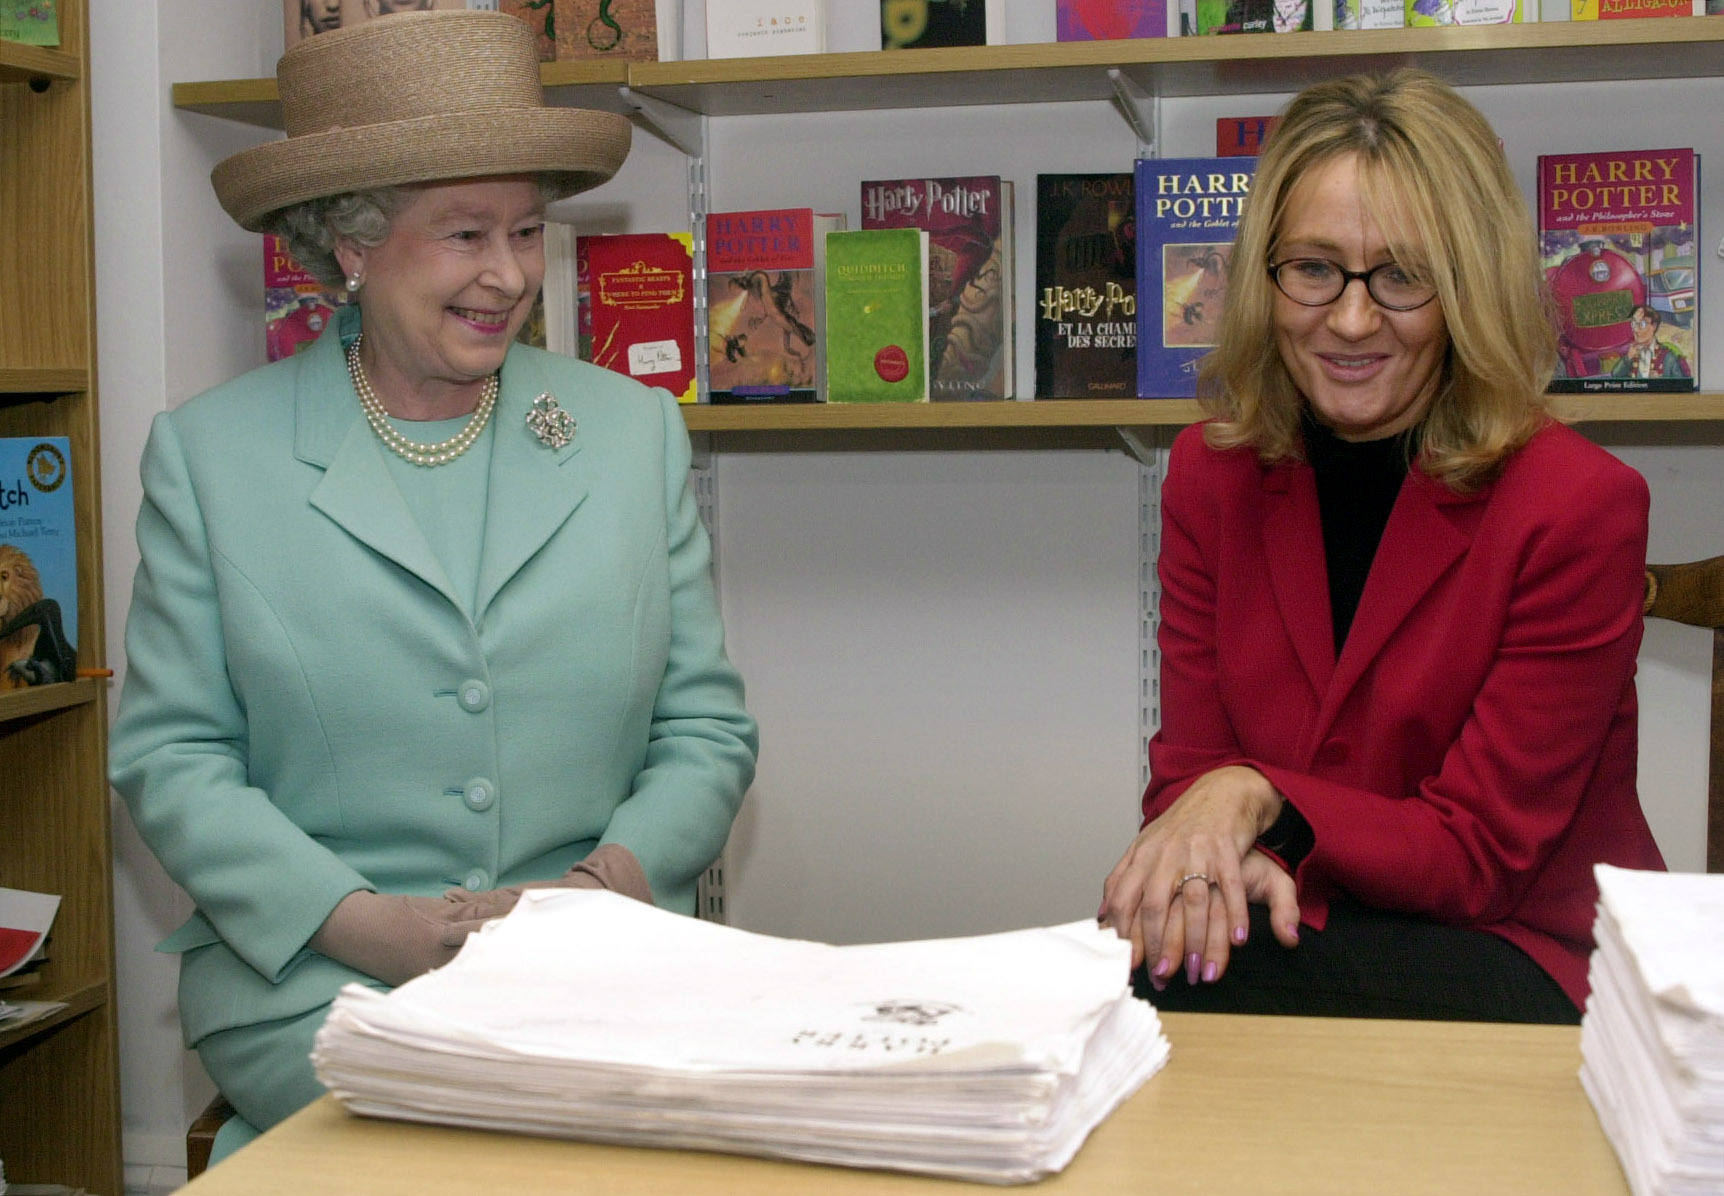 JK Rowling with the queen